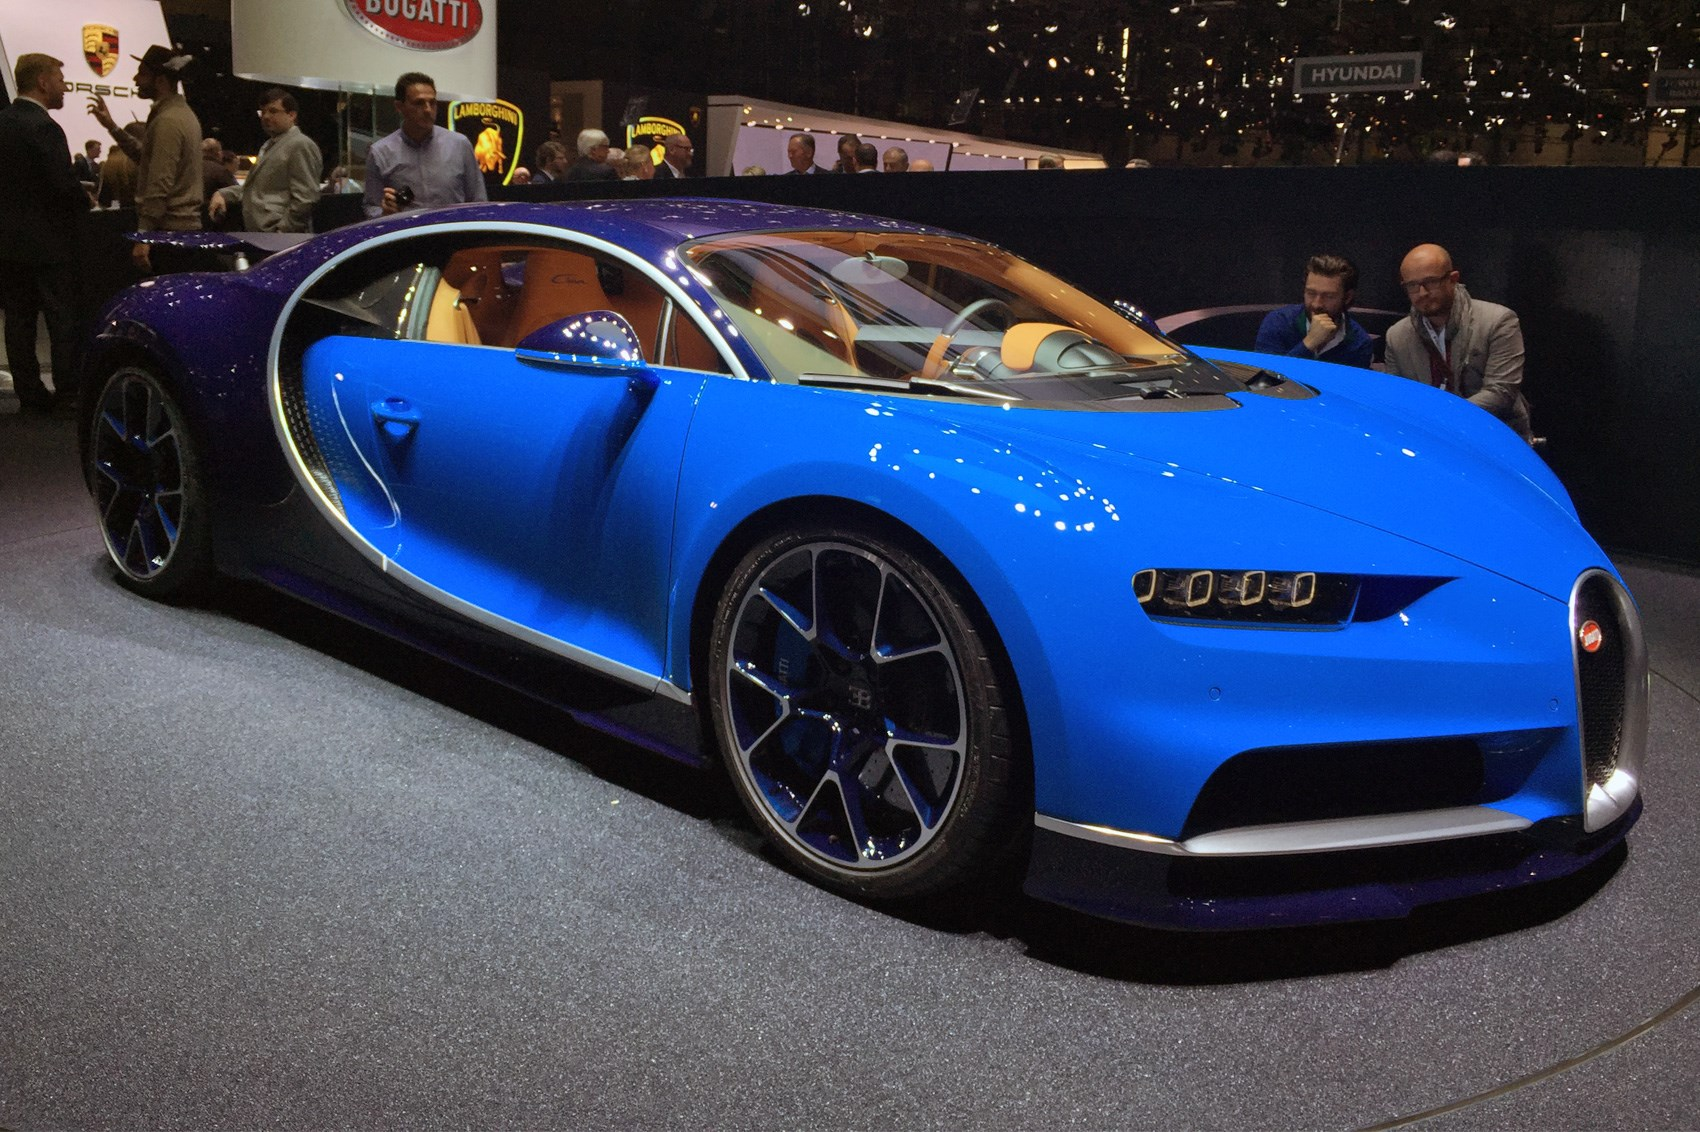 Ultrablogus  Pleasing Bugatti Is Go New Chiron Name Confirmed Here At Geneva  By  With Excellent Bugatti Chiron Revealed At Geneva  The World Has A New Fastest Production Car With Beautiful Led Interior Light Strips Also  Mustang Interior In Addition Crx Interior And Honda Ridgeline Interior Lights As Well As  Corvette Interior Additionally Dodge Viper Srt Interior From Carmagazinecouk With Ultrablogus  Excellent Bugatti Is Go New Chiron Name Confirmed Here At Geneva  By  With Beautiful Bugatti Chiron Revealed At Geneva  The World Has A New Fastest Production Car And Pleasing Led Interior Light Strips Also  Mustang Interior In Addition Crx Interior From Carmagazinecouk